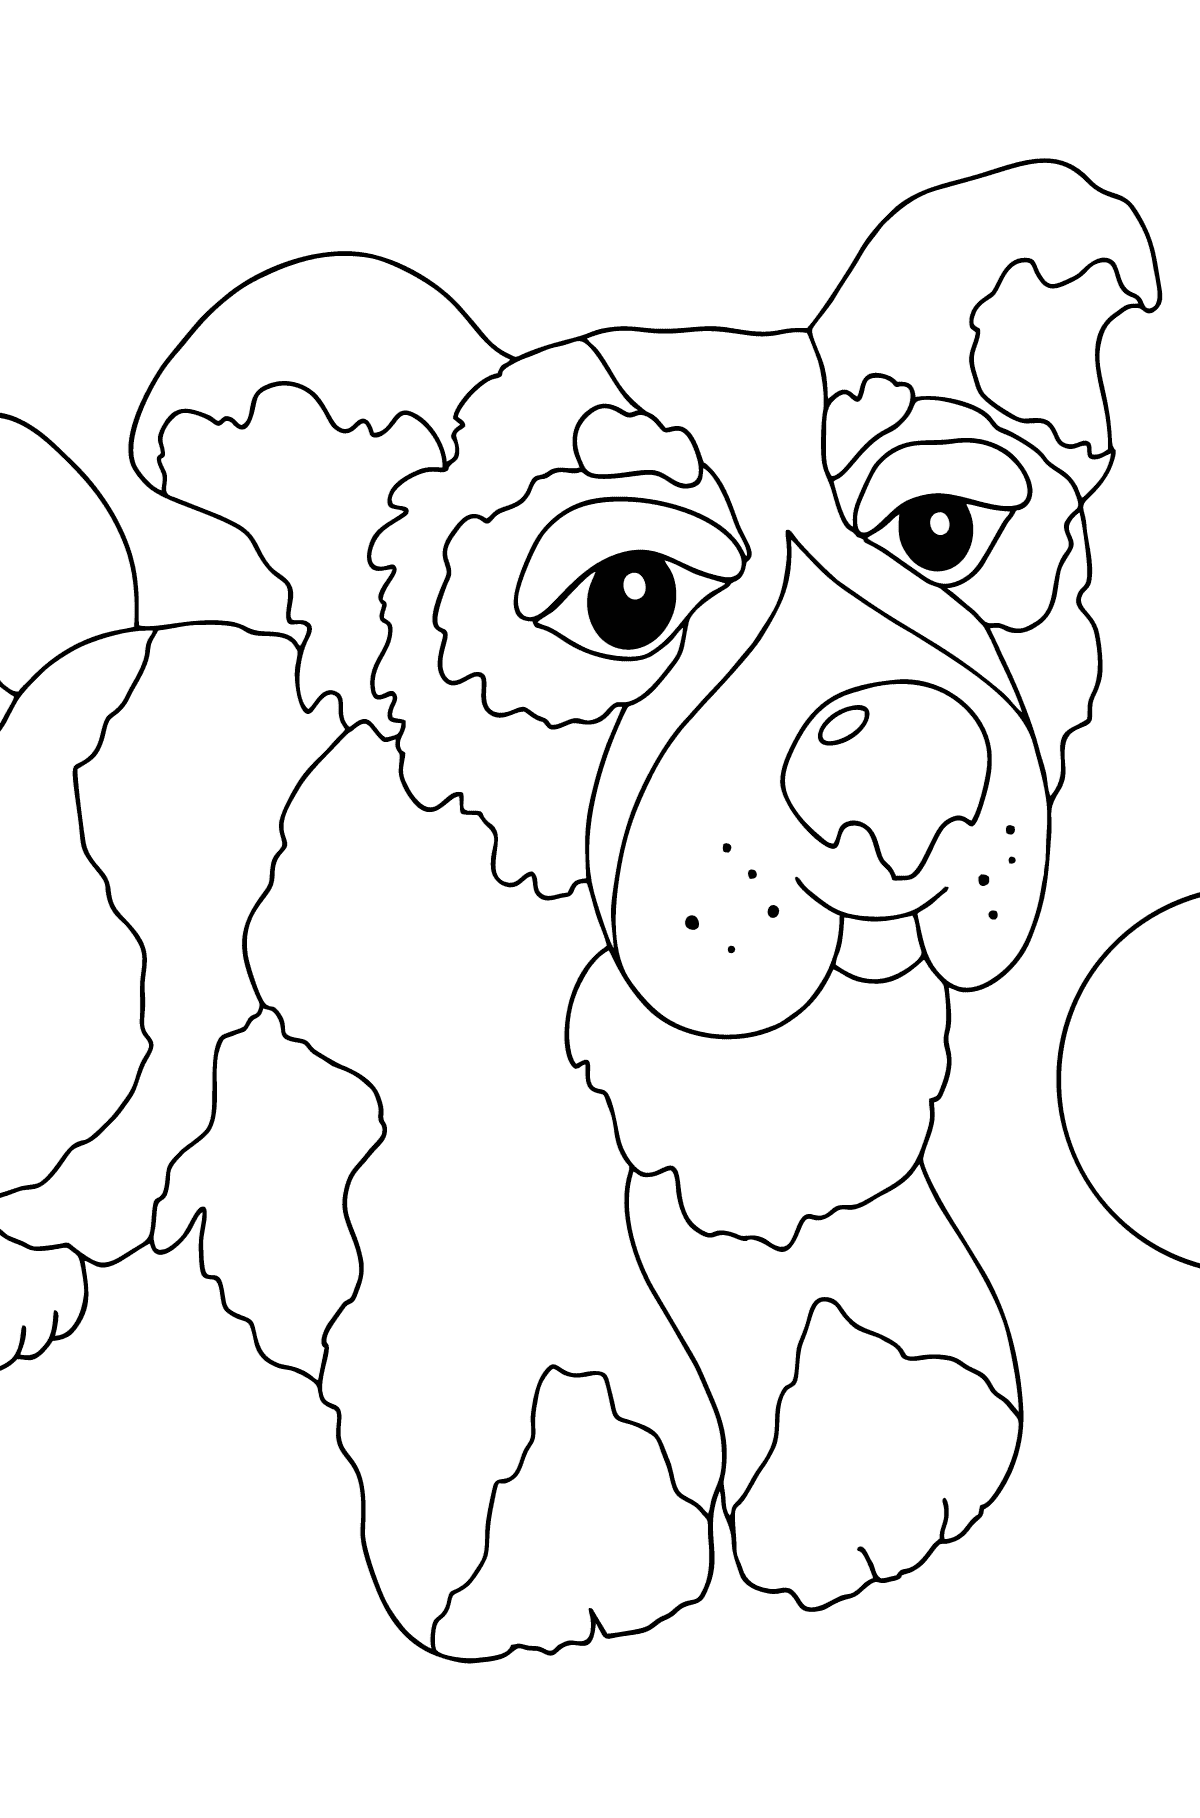 Coloring Page - A Dog is Playing with a Ball for Children